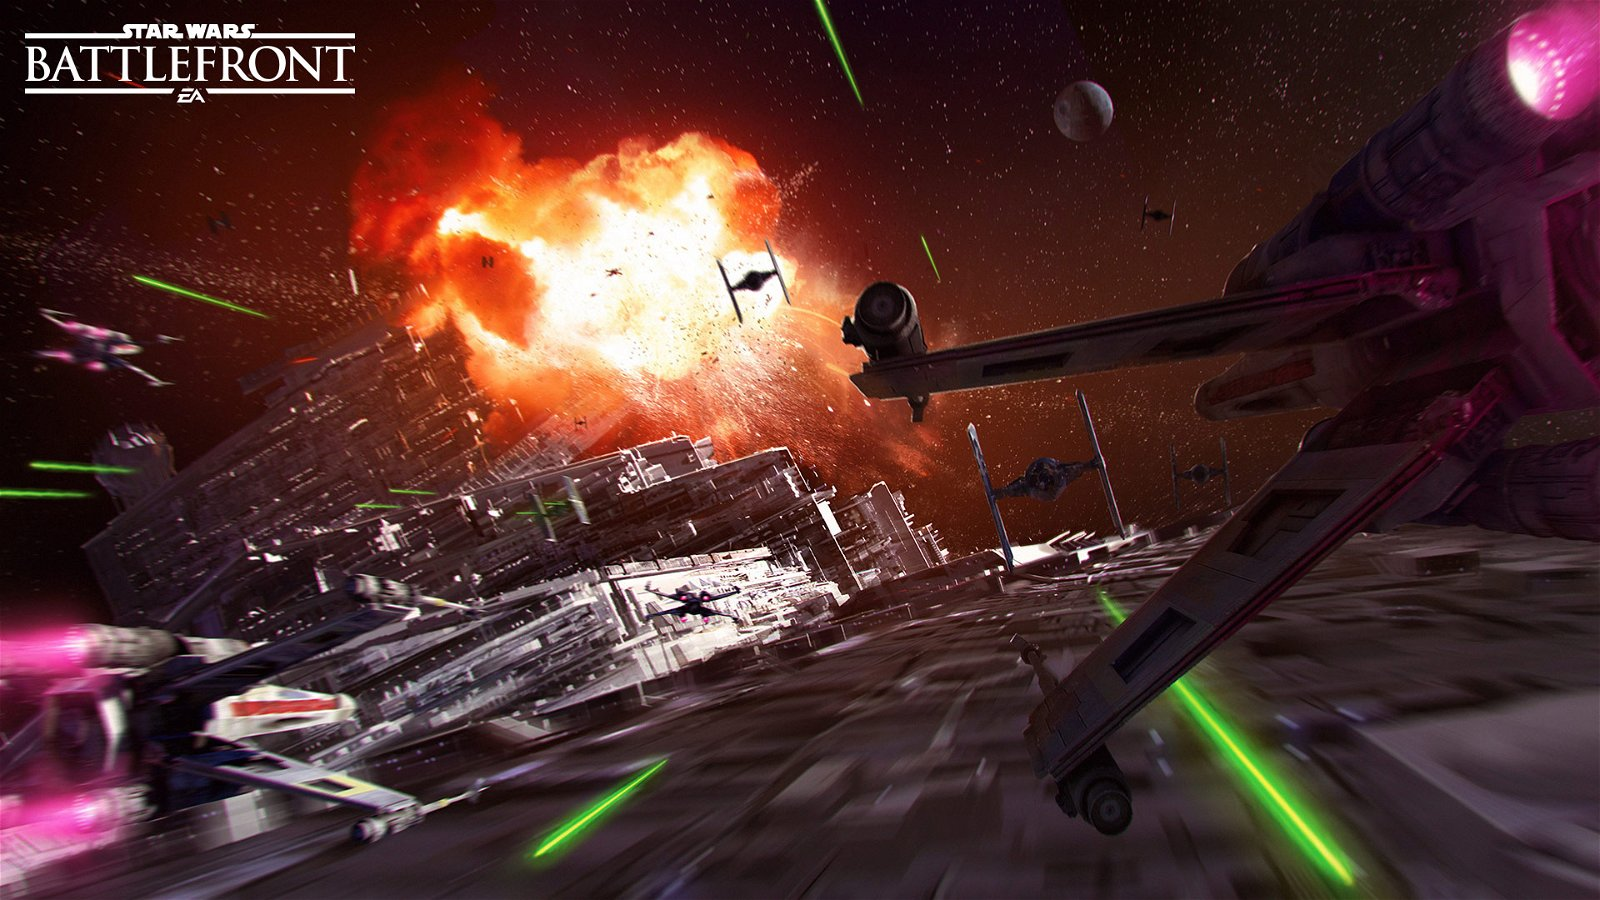 Star Wars Battlefront Adds New Game Mode In Next Expansion